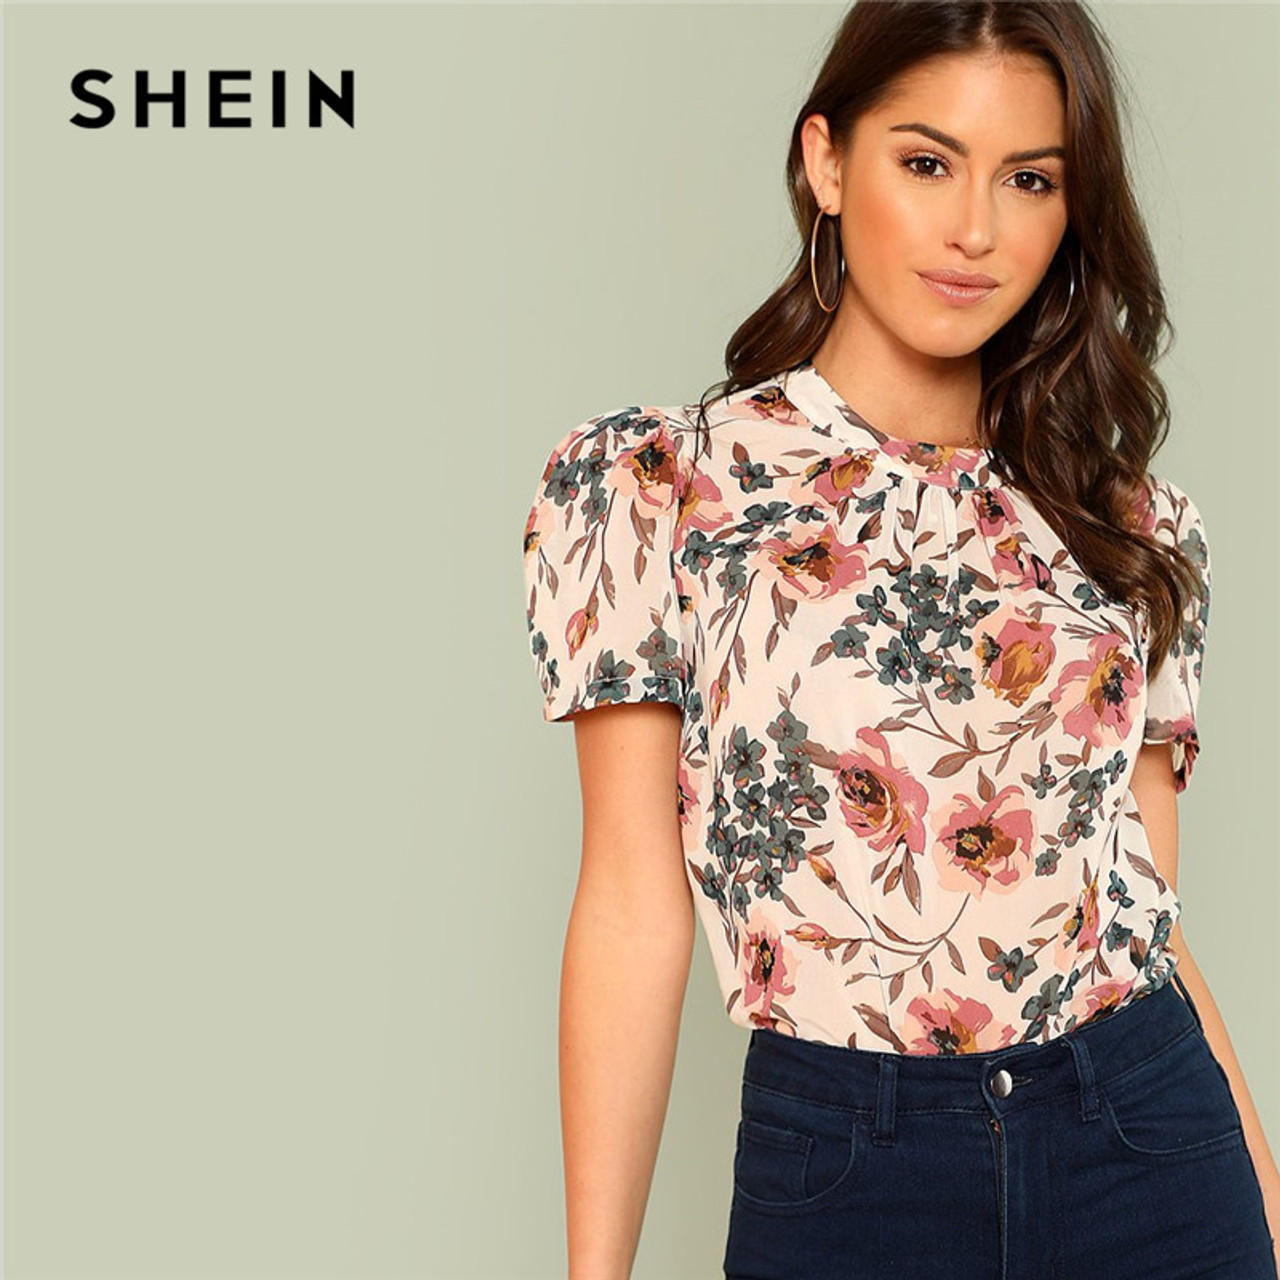 51f7854d10 SHEIN Prairie Chic Boho Multicolor Floral Print Gathered Neck Puff Sleeve  Womens Tops and Blouses for ...